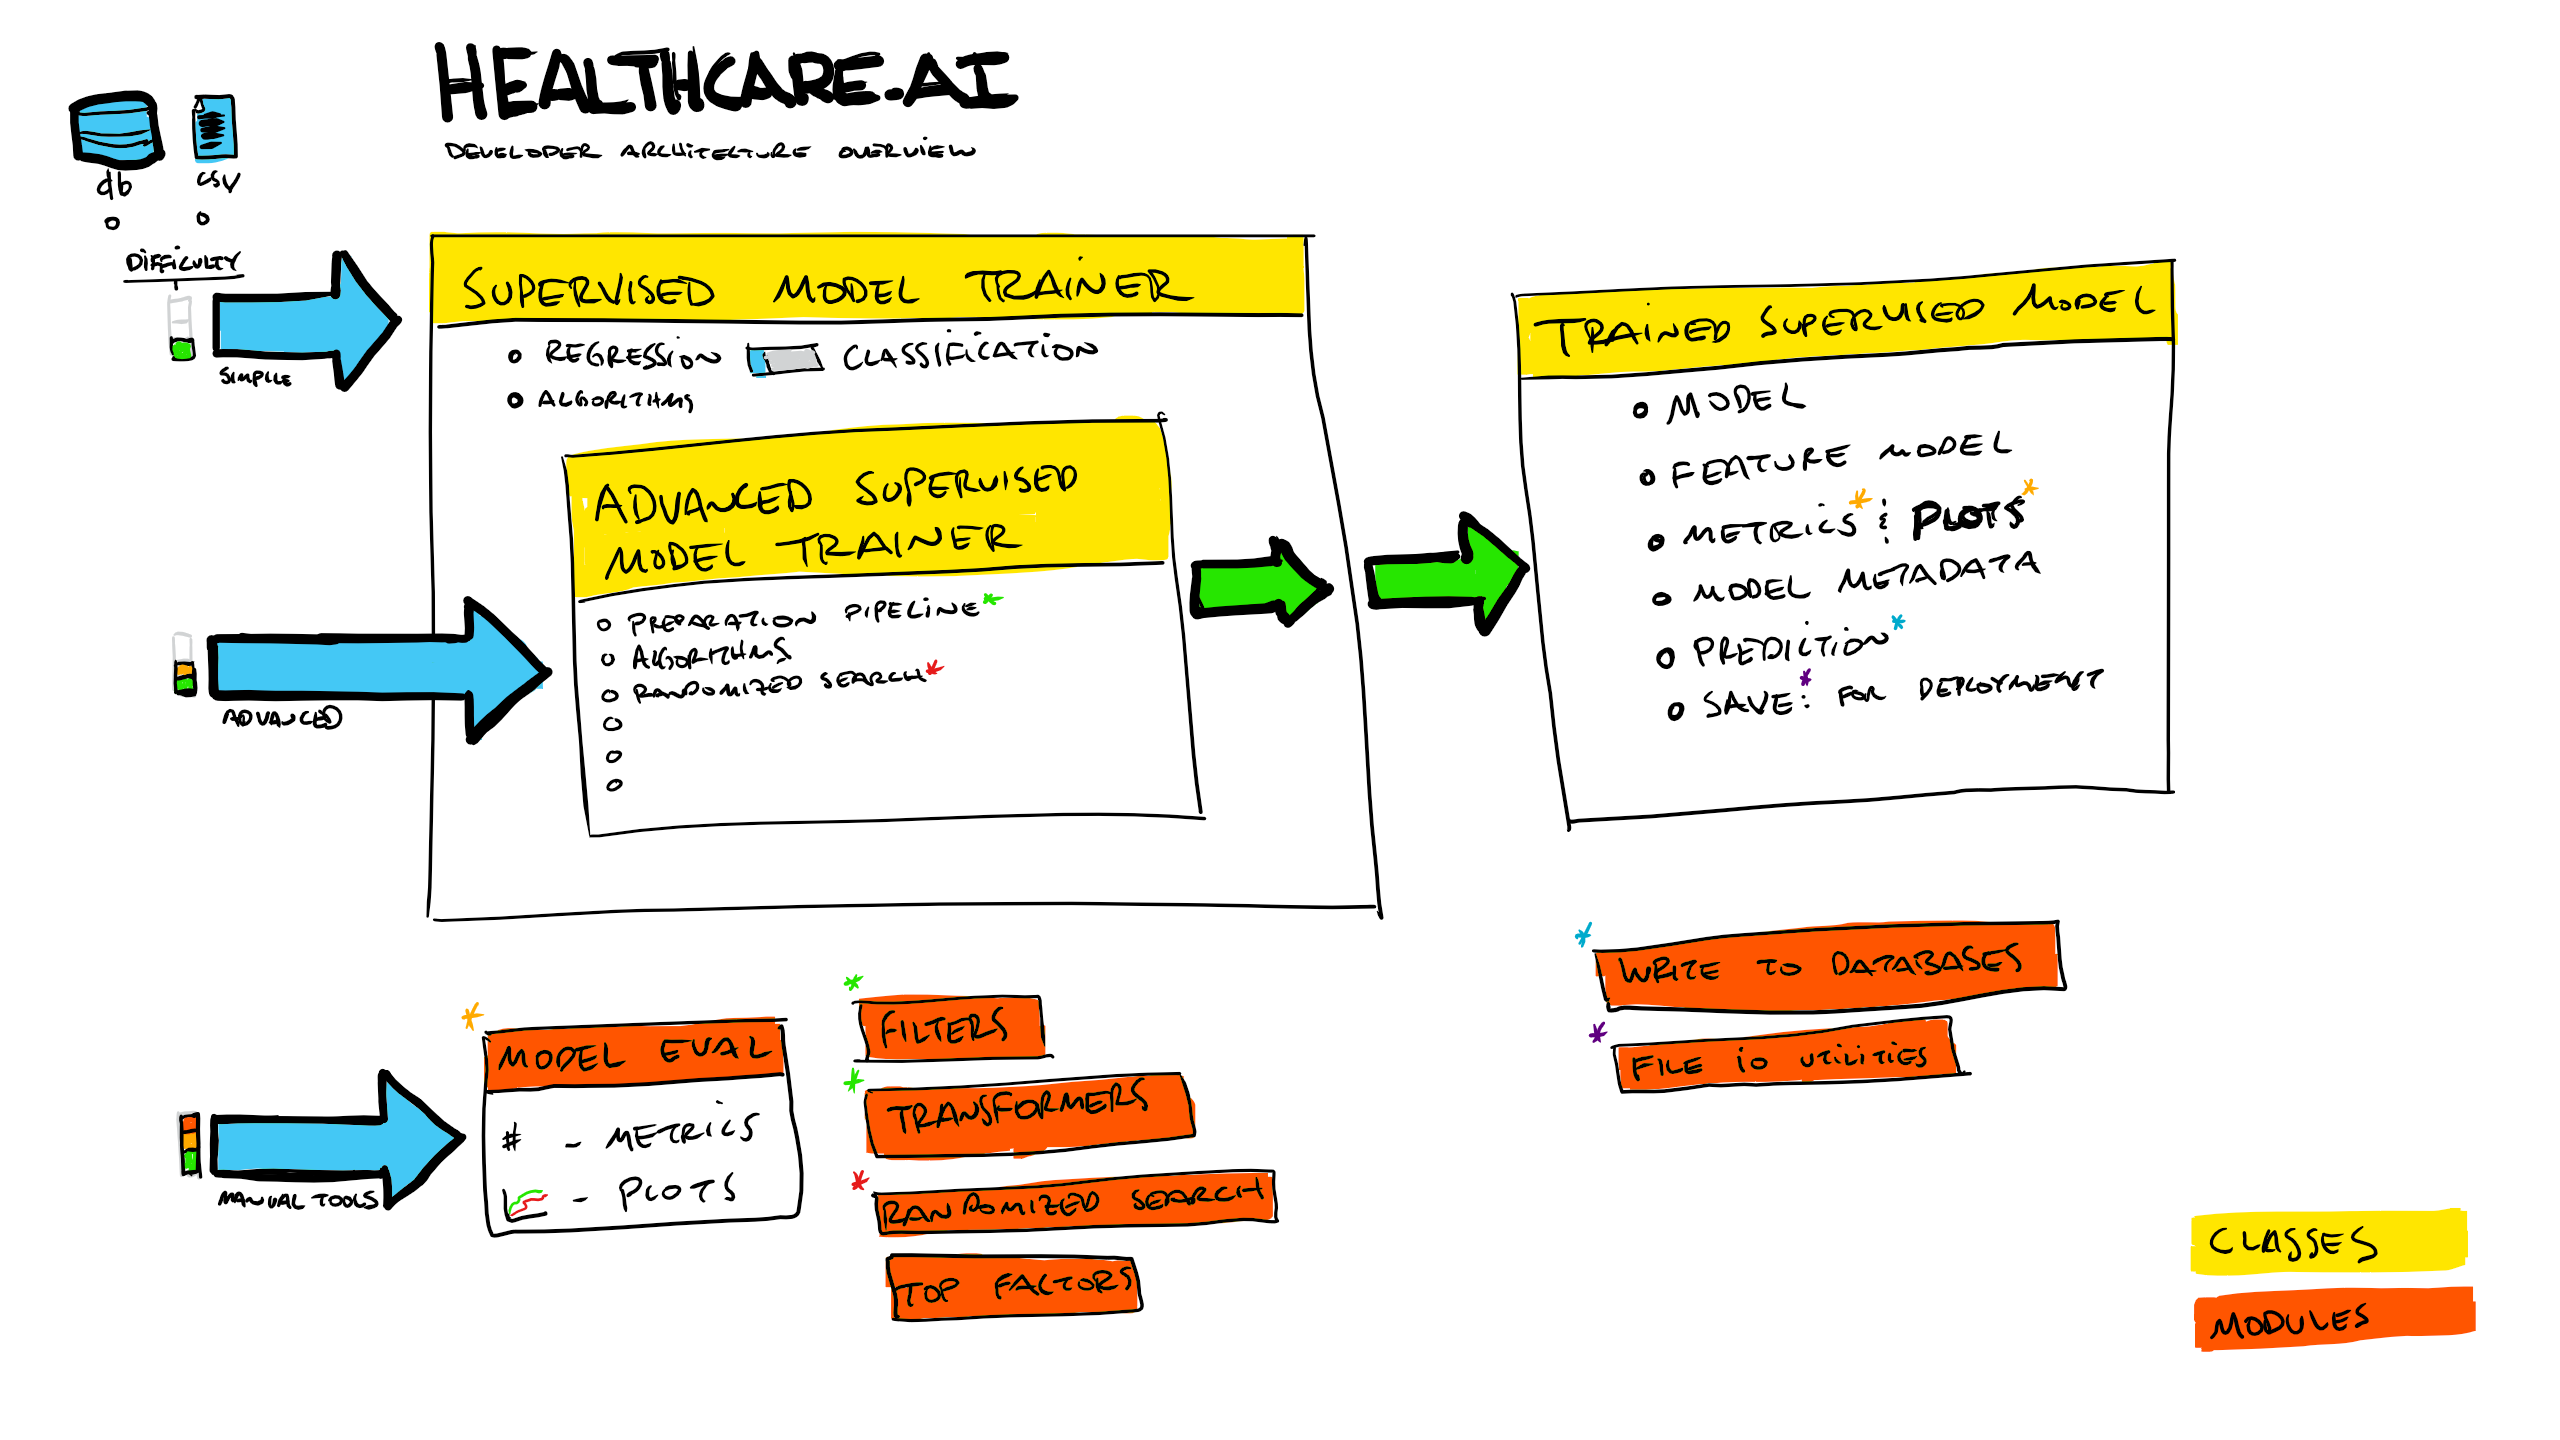 Architecture overview for developers healthcare architecture diagram ccuart Gallery